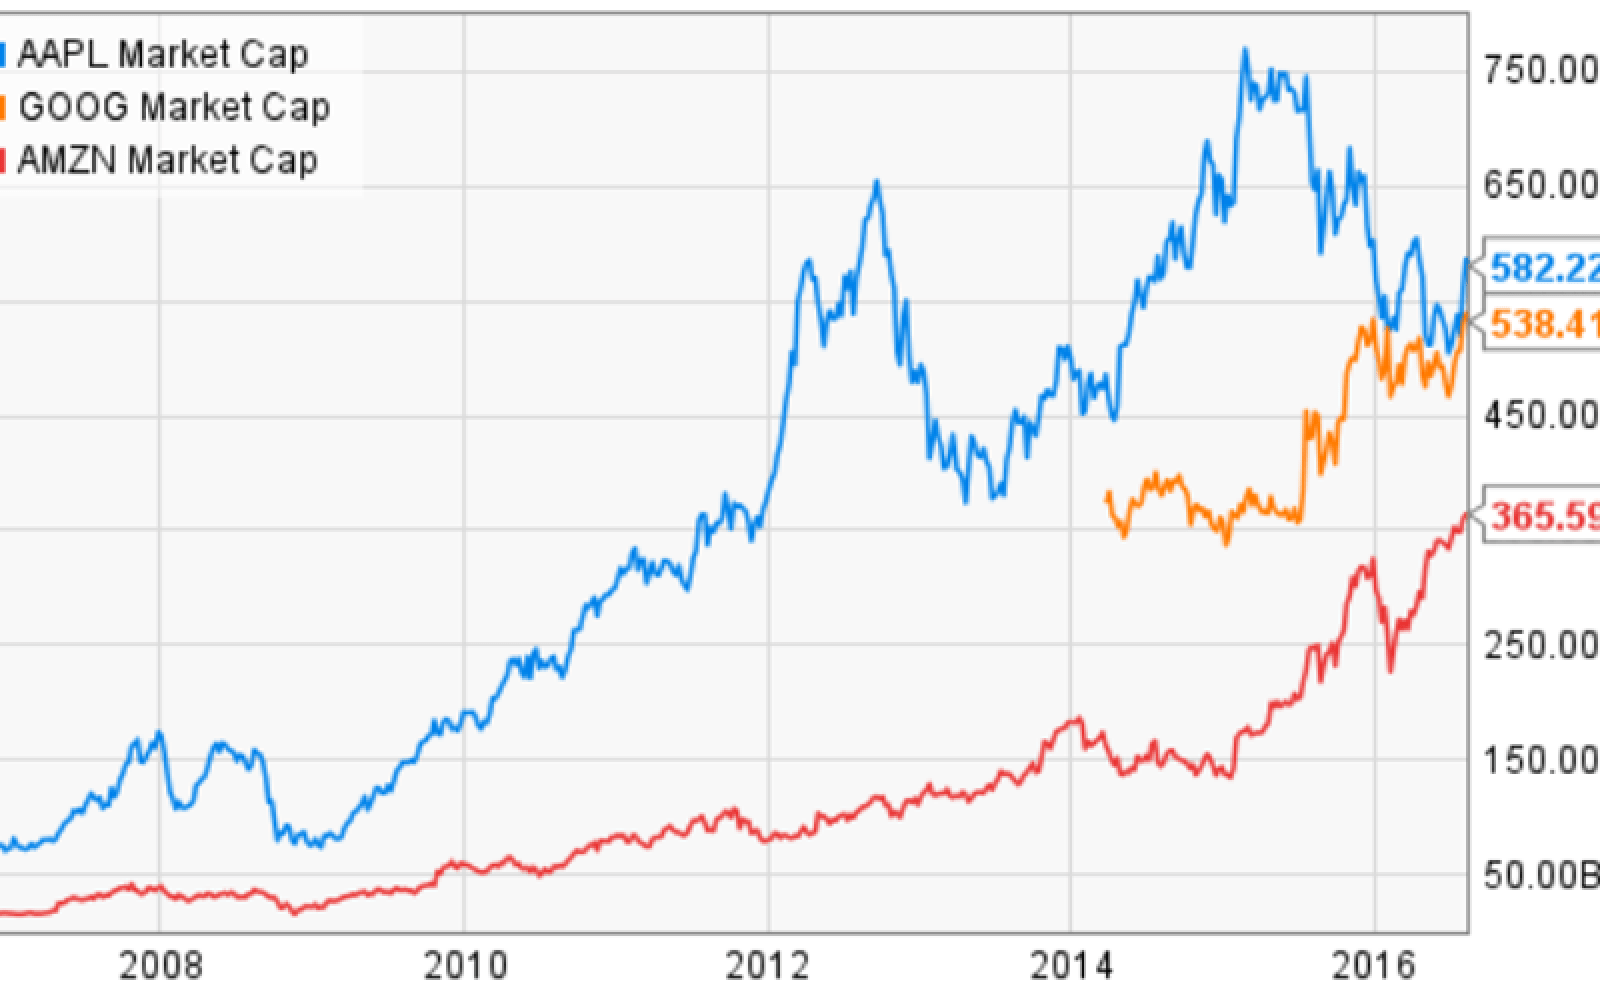 Could Amazon or Alphabet beat AAPL to be the first trillion-dollar company? [Poll]